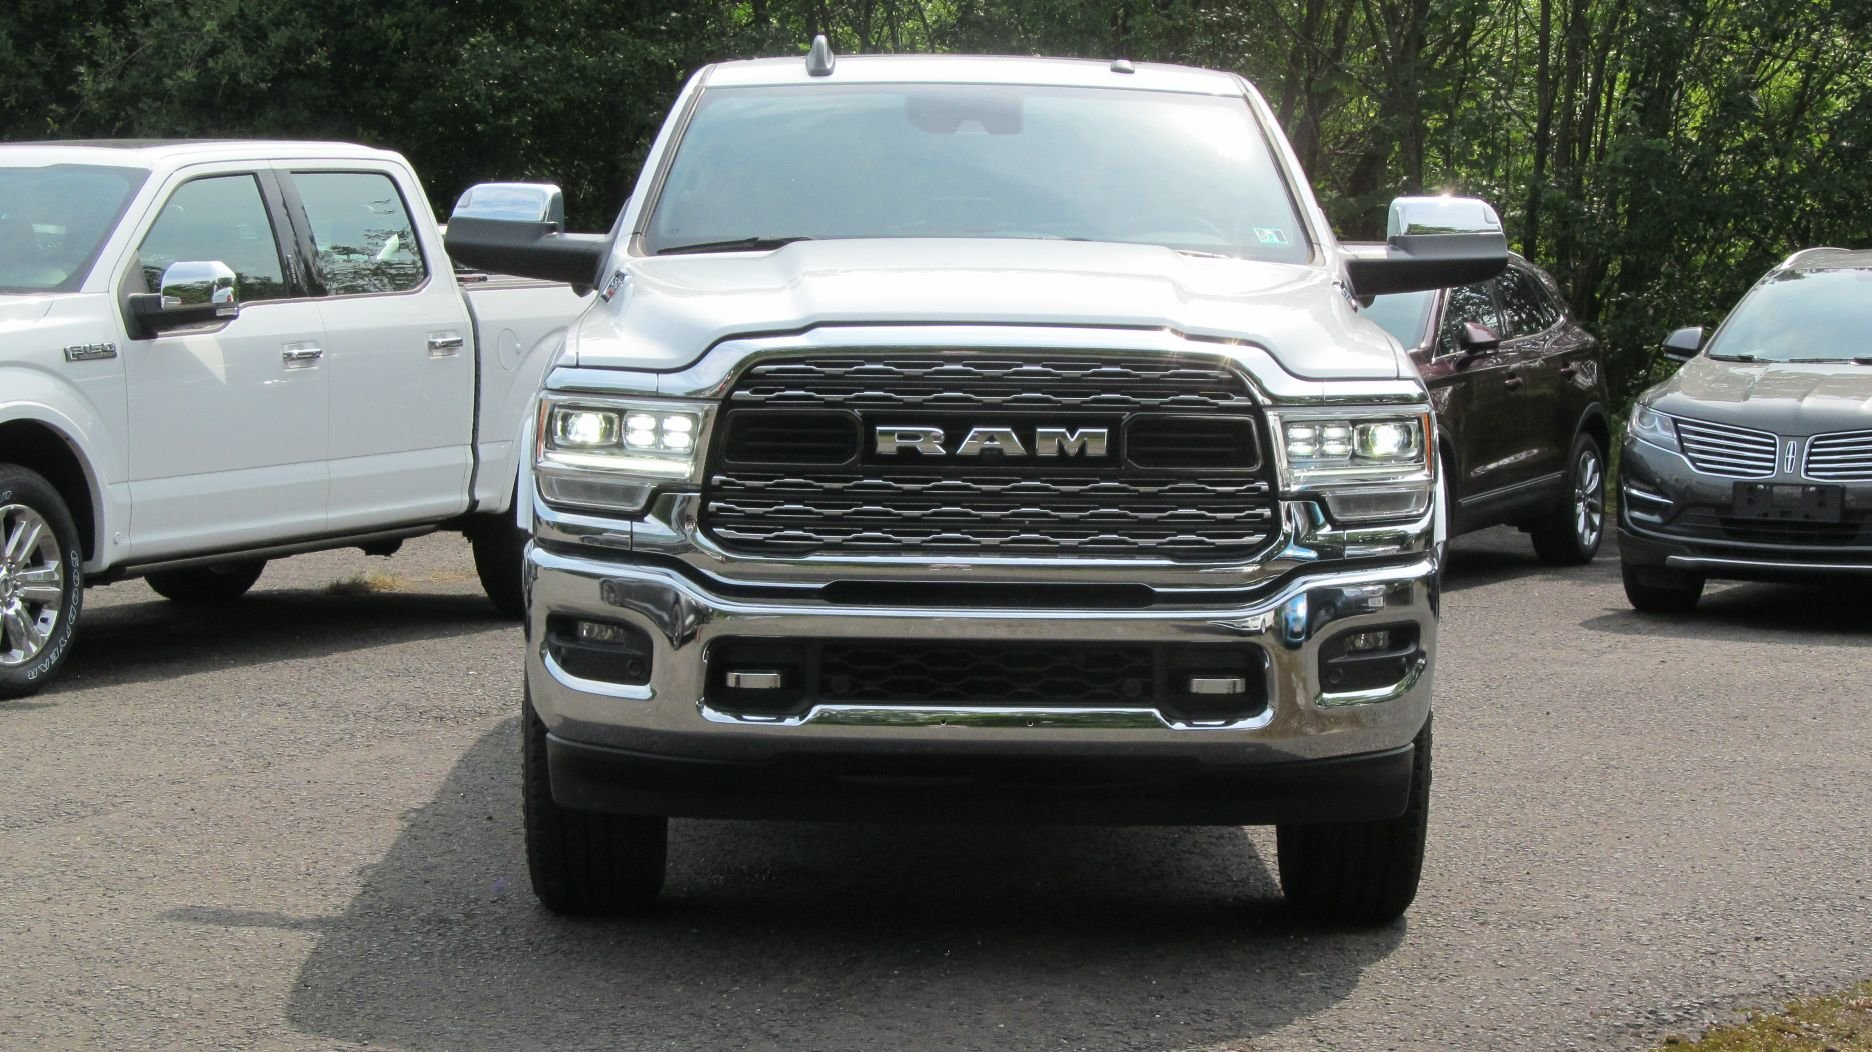 2020 Dodge RAM 2500 6.4L V8 LIMITED 4x4 Crew Cab For Sale (picture 2 of 6)